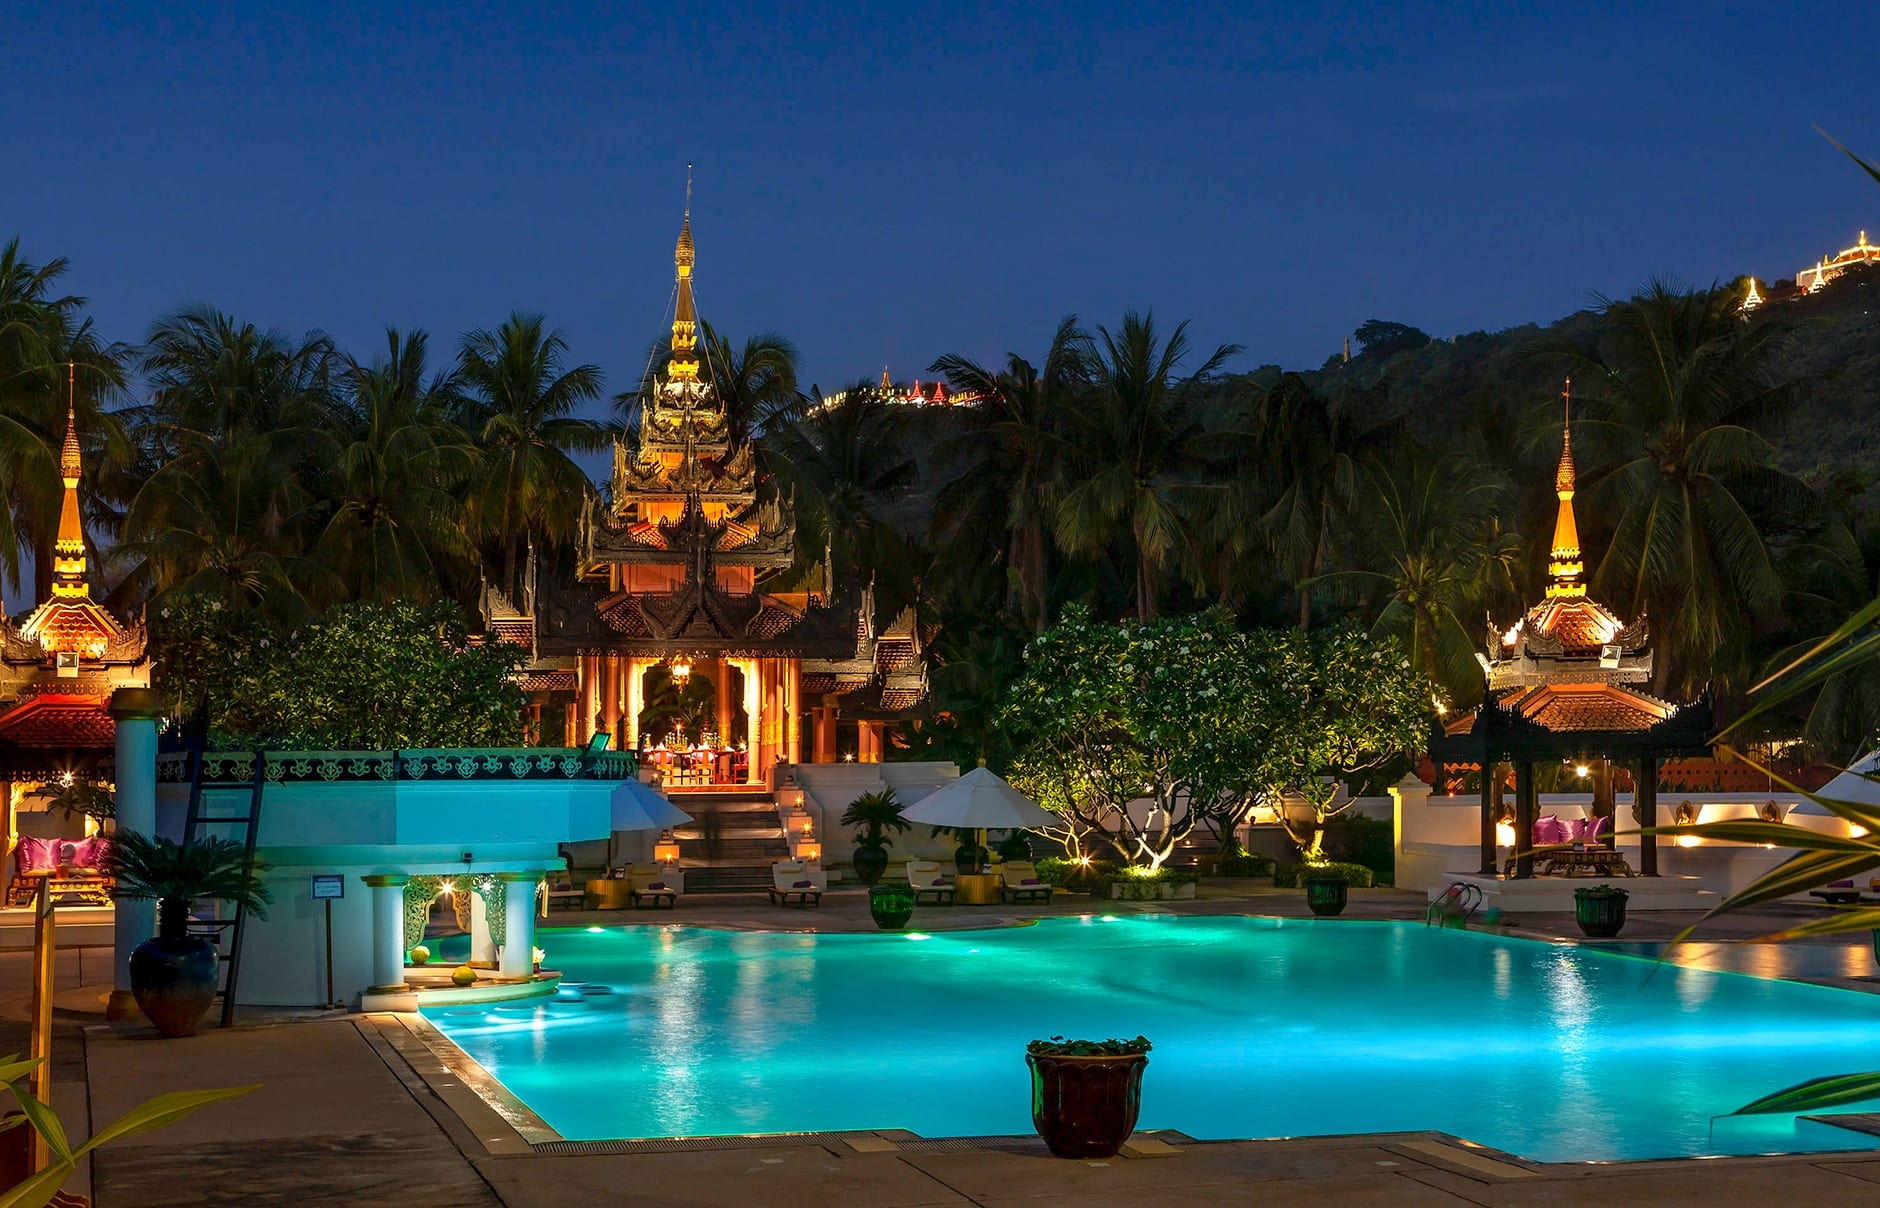 Mercure Mandalay Hill Resort, Mandalay, Myanmar. Hotel Review by TravelPlusStyle. Photo © AccorHotels